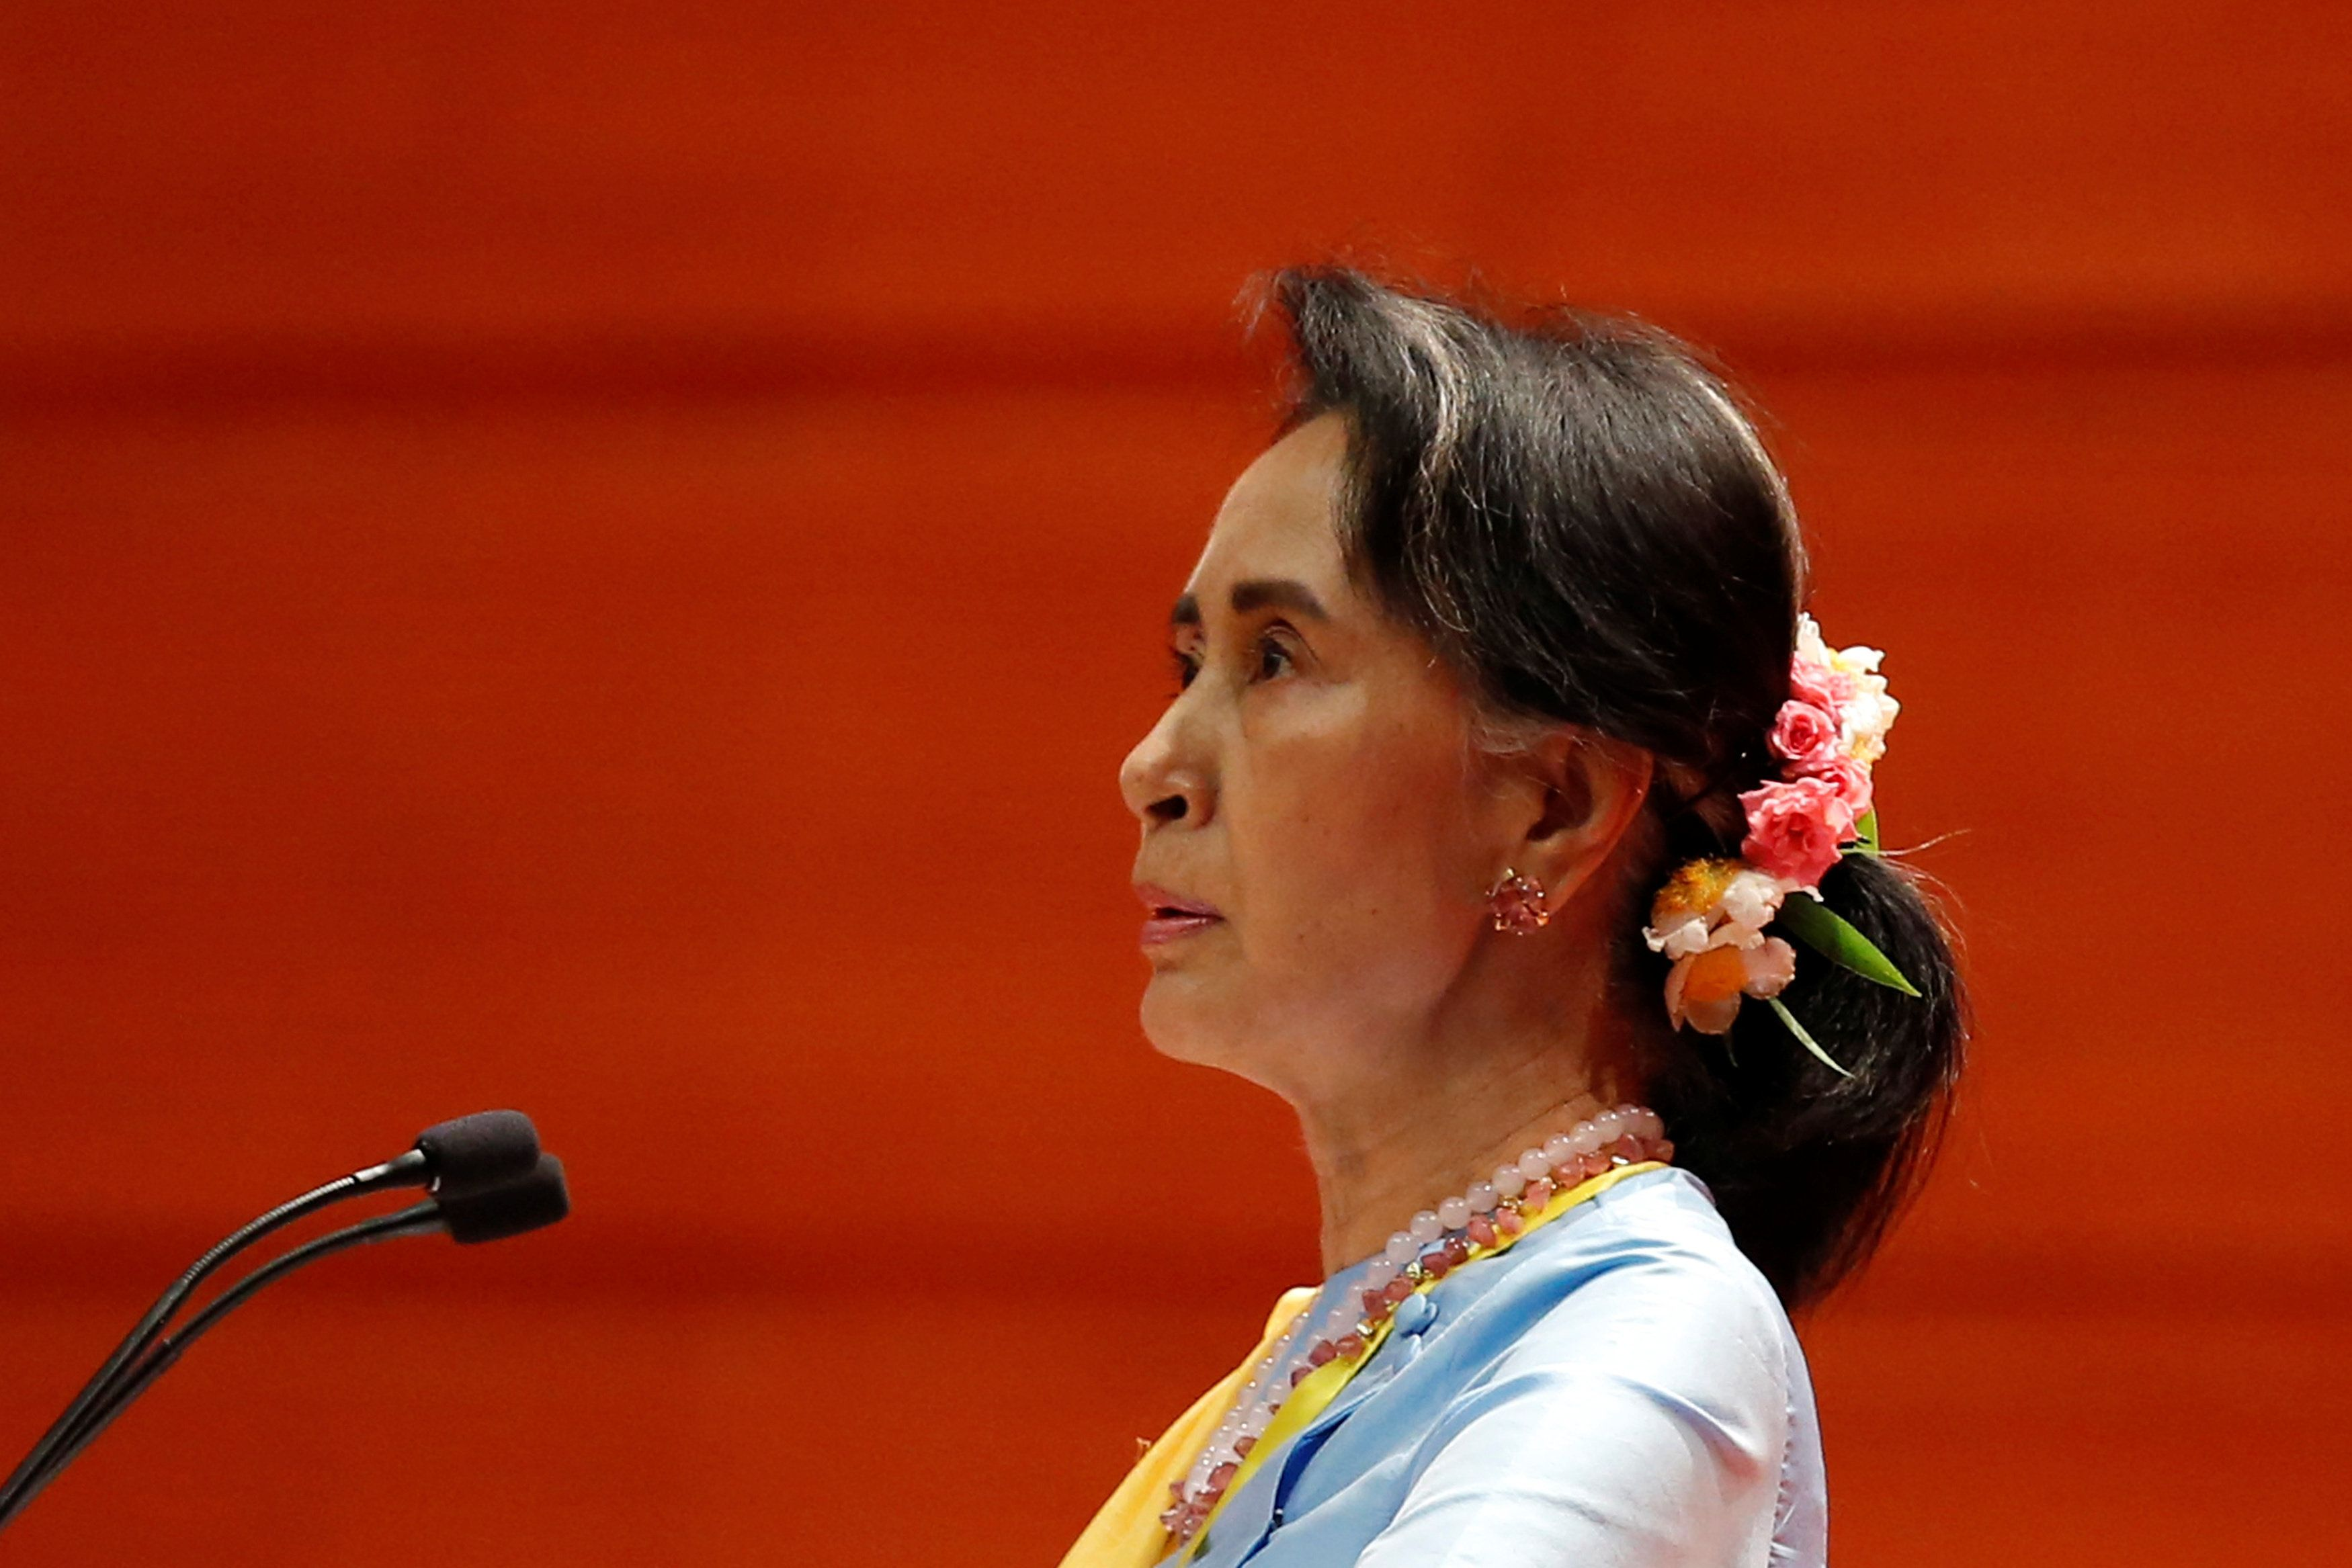 Aung San Suu Kyi has remained tight-lipped about the state-sanctioned massacre of Rohingya Muslims in Myanmar's Rakhine State